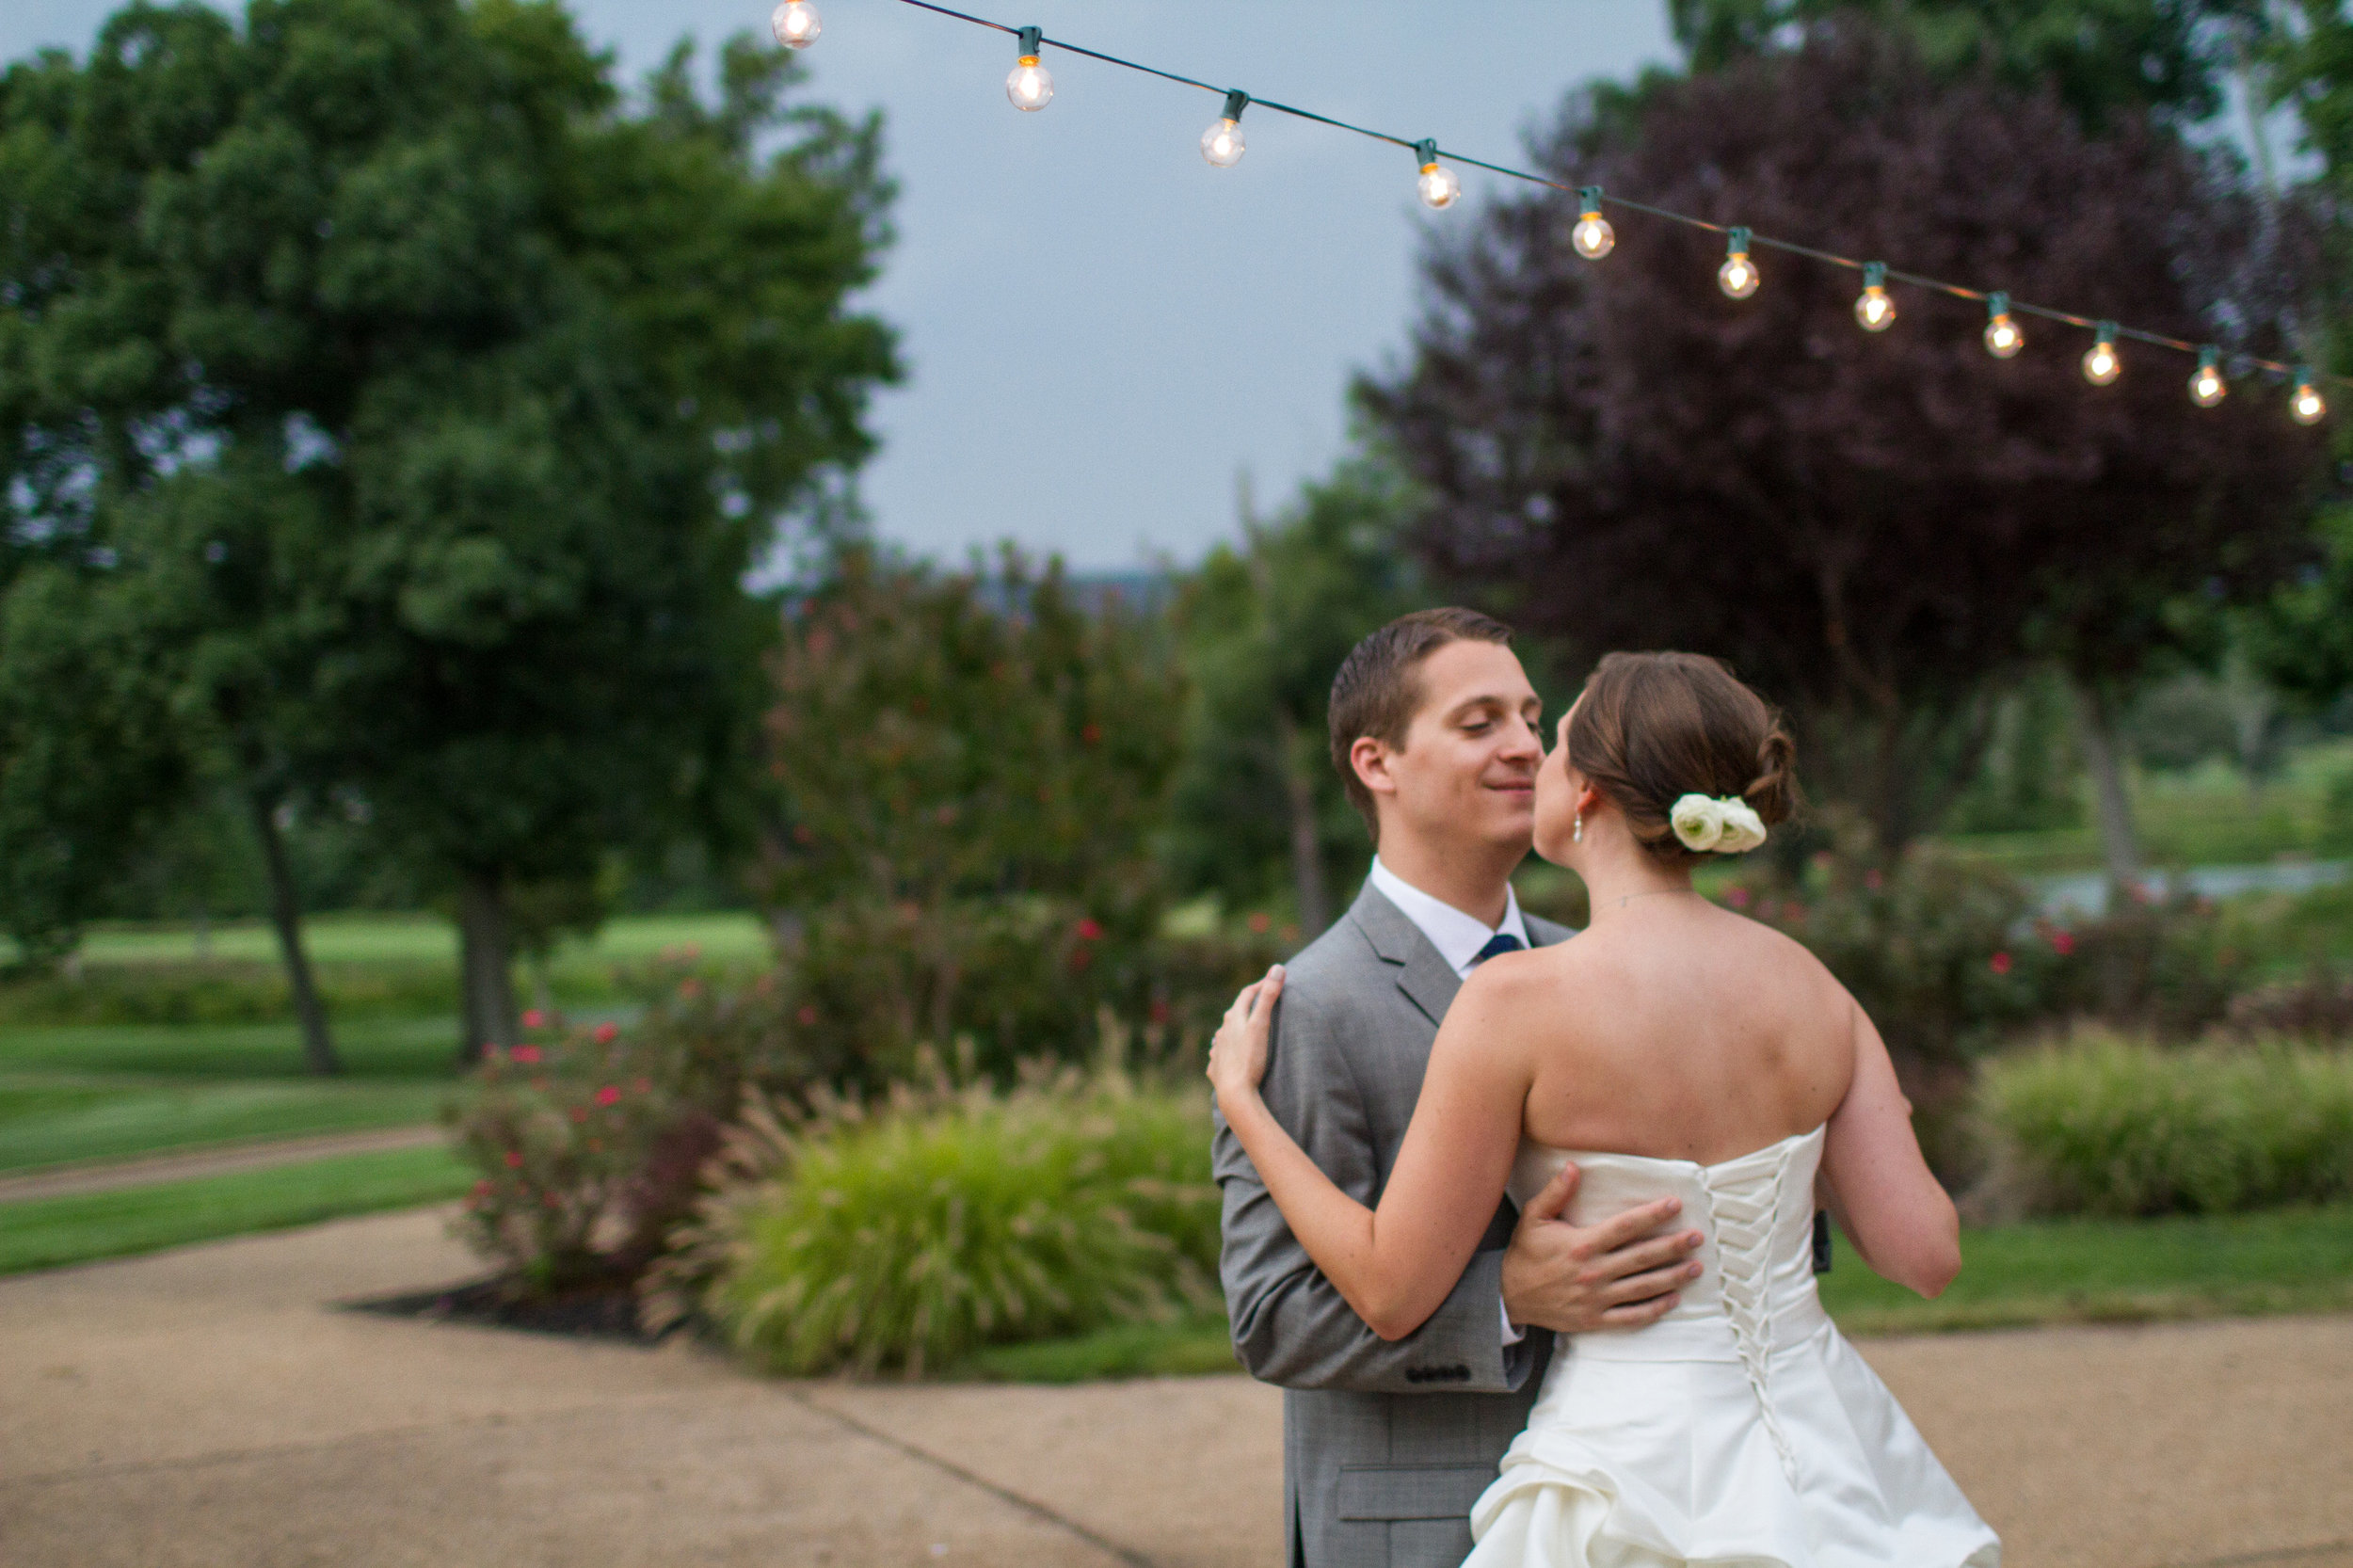 Cocktail hour cafe lights | Bull Run Golf Club wedding